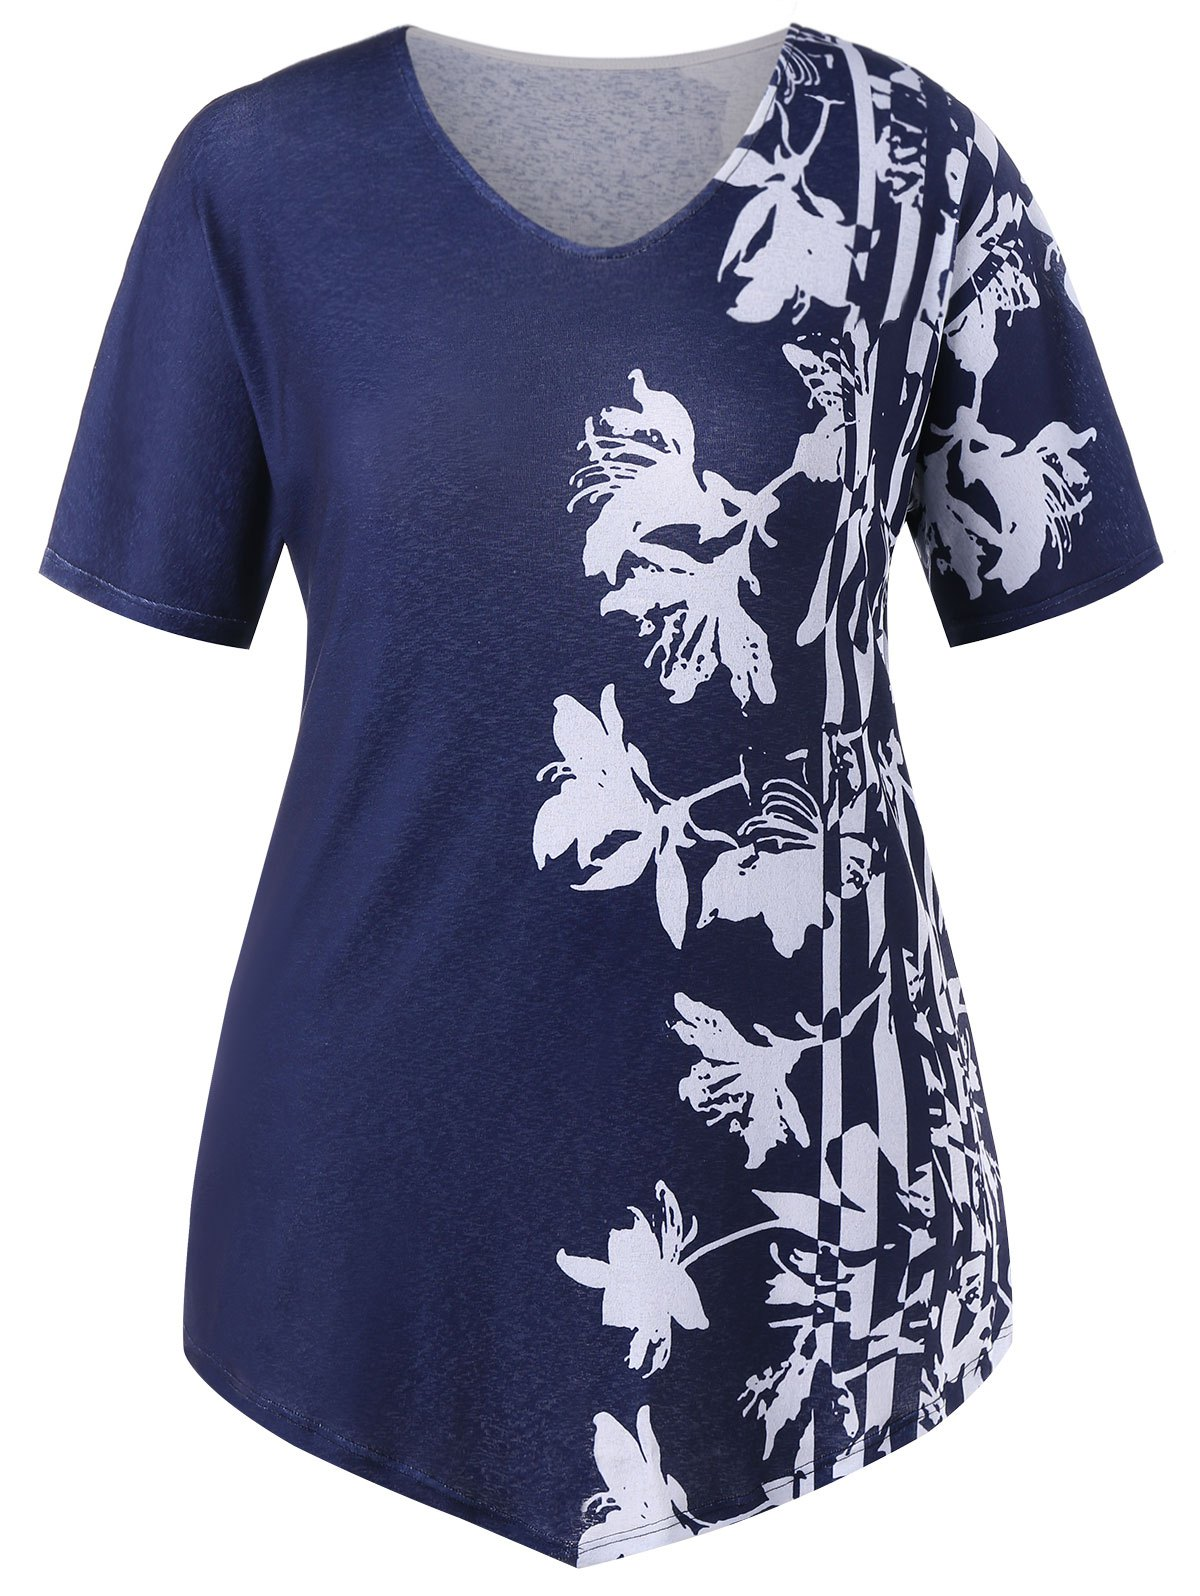 Plus Size Two Tone Floral V Neck T-shirt - MIDNIGHT BLUE L